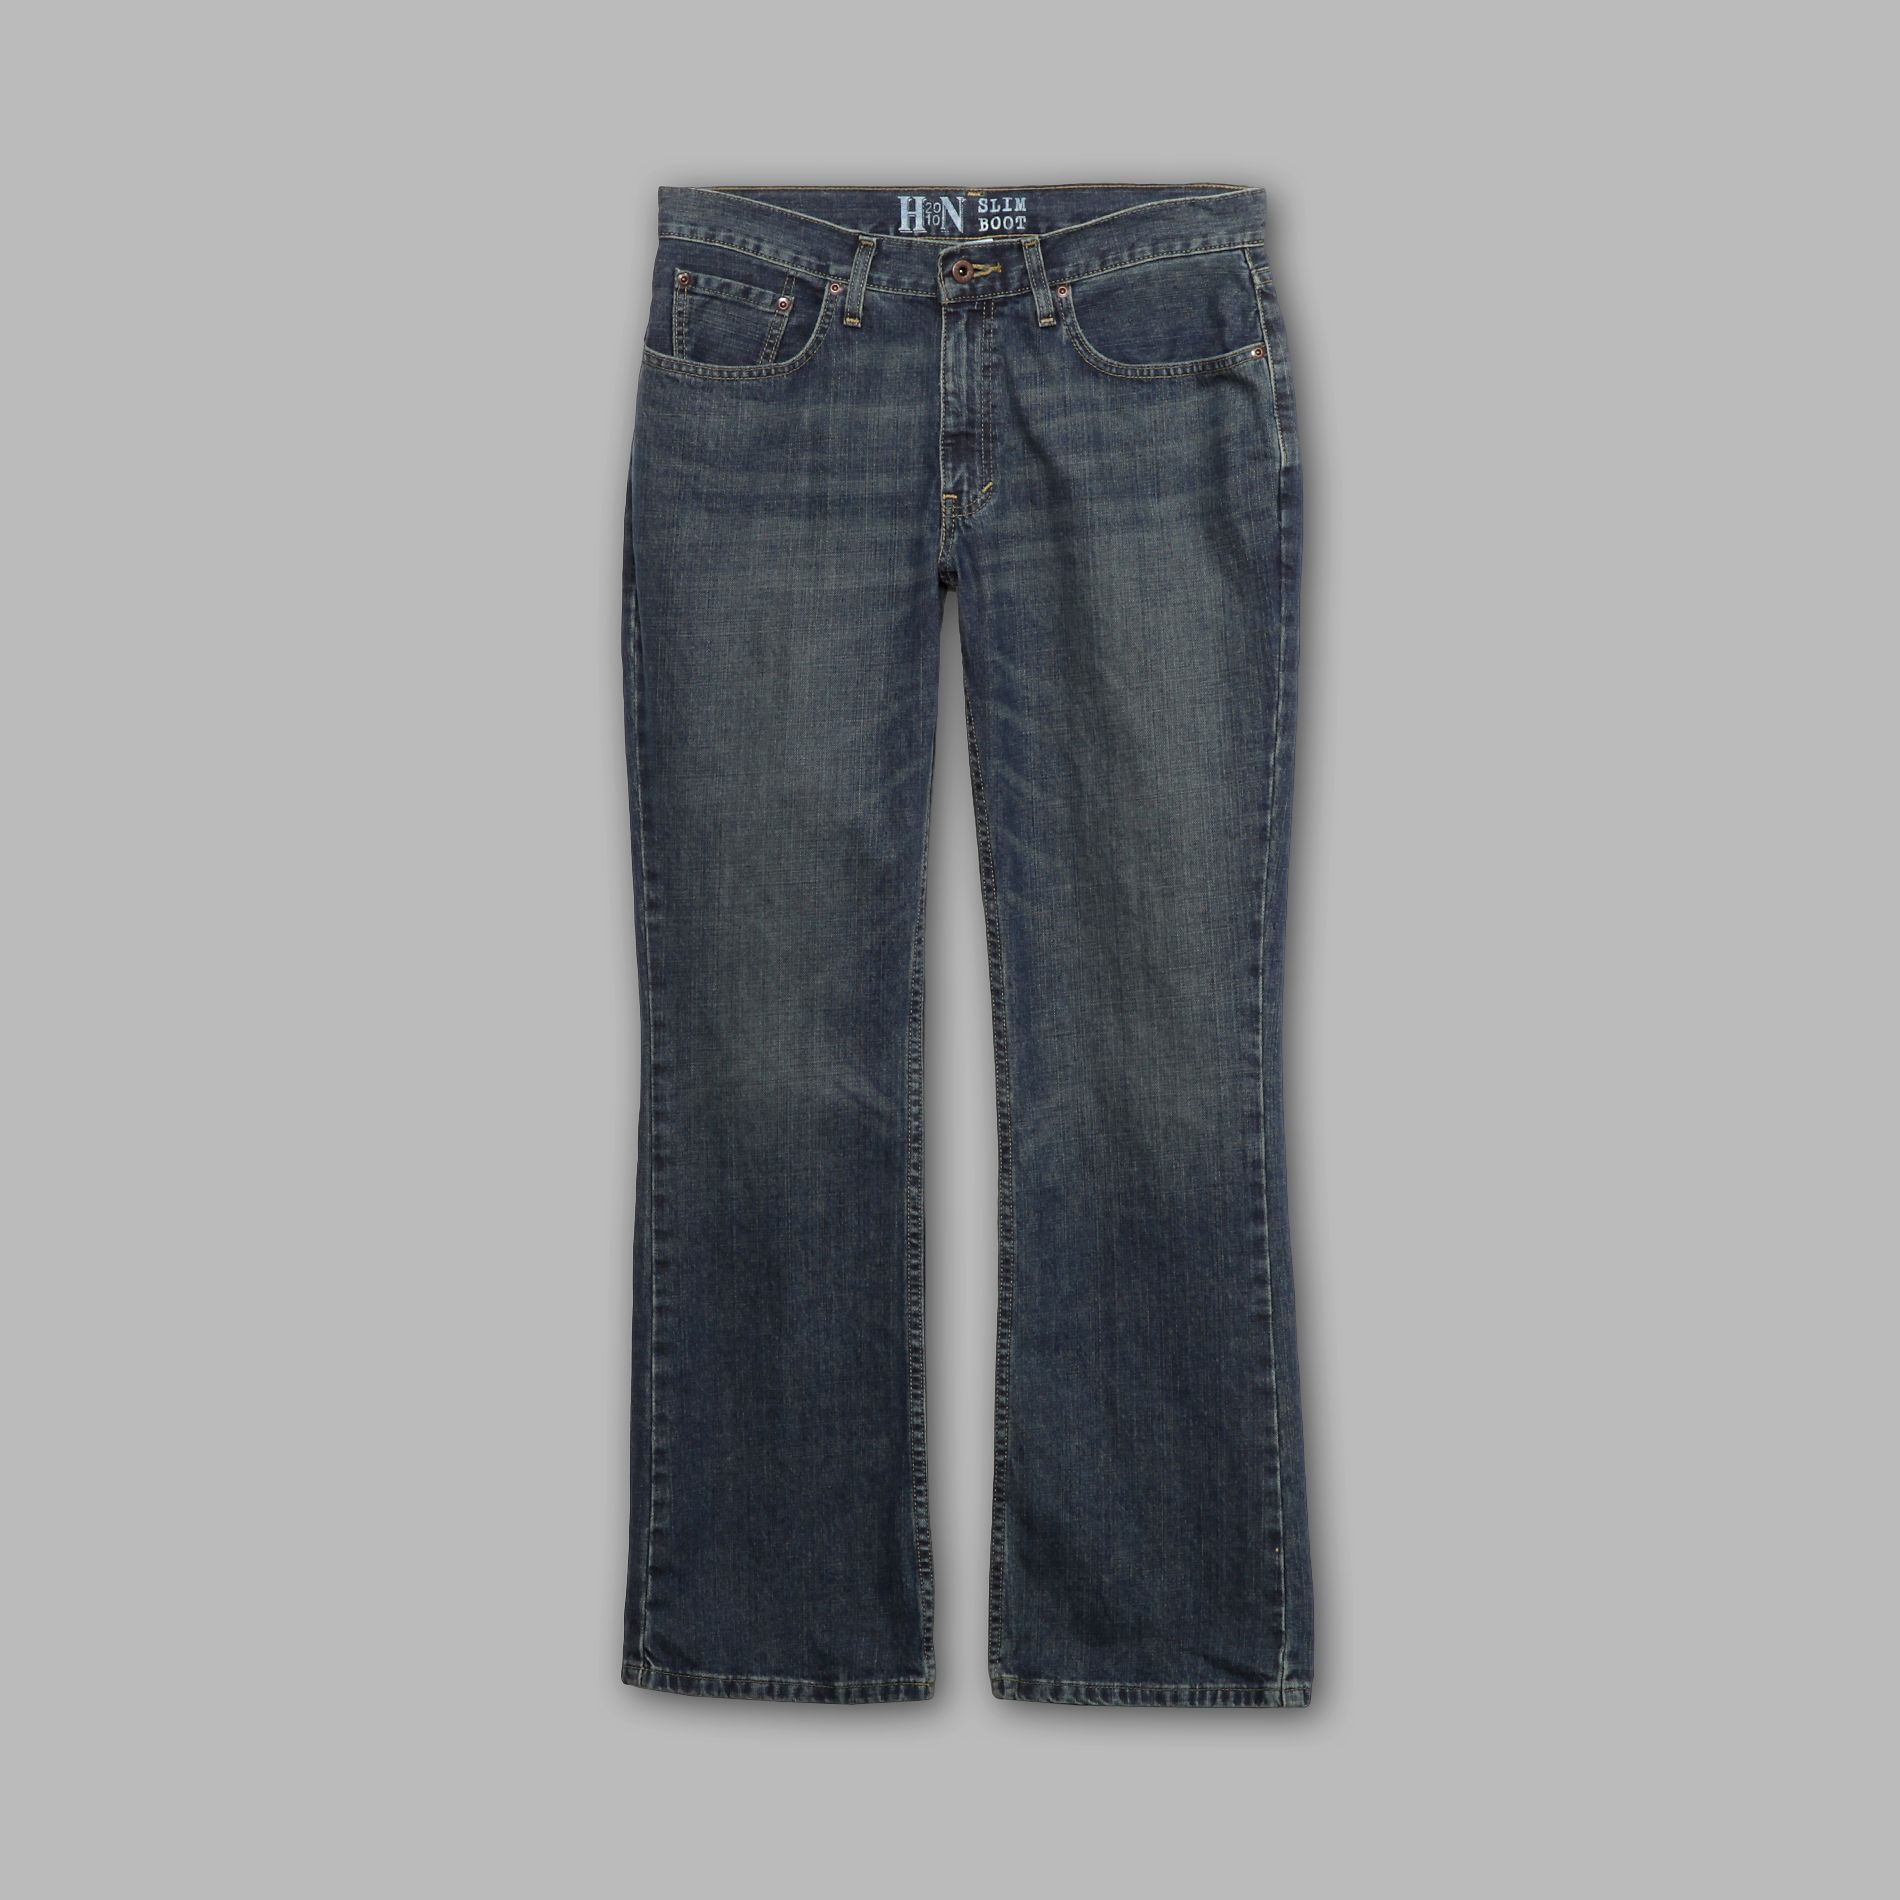 Heritage Nation Men's Slim Bootcut Jeans at Kmart.com